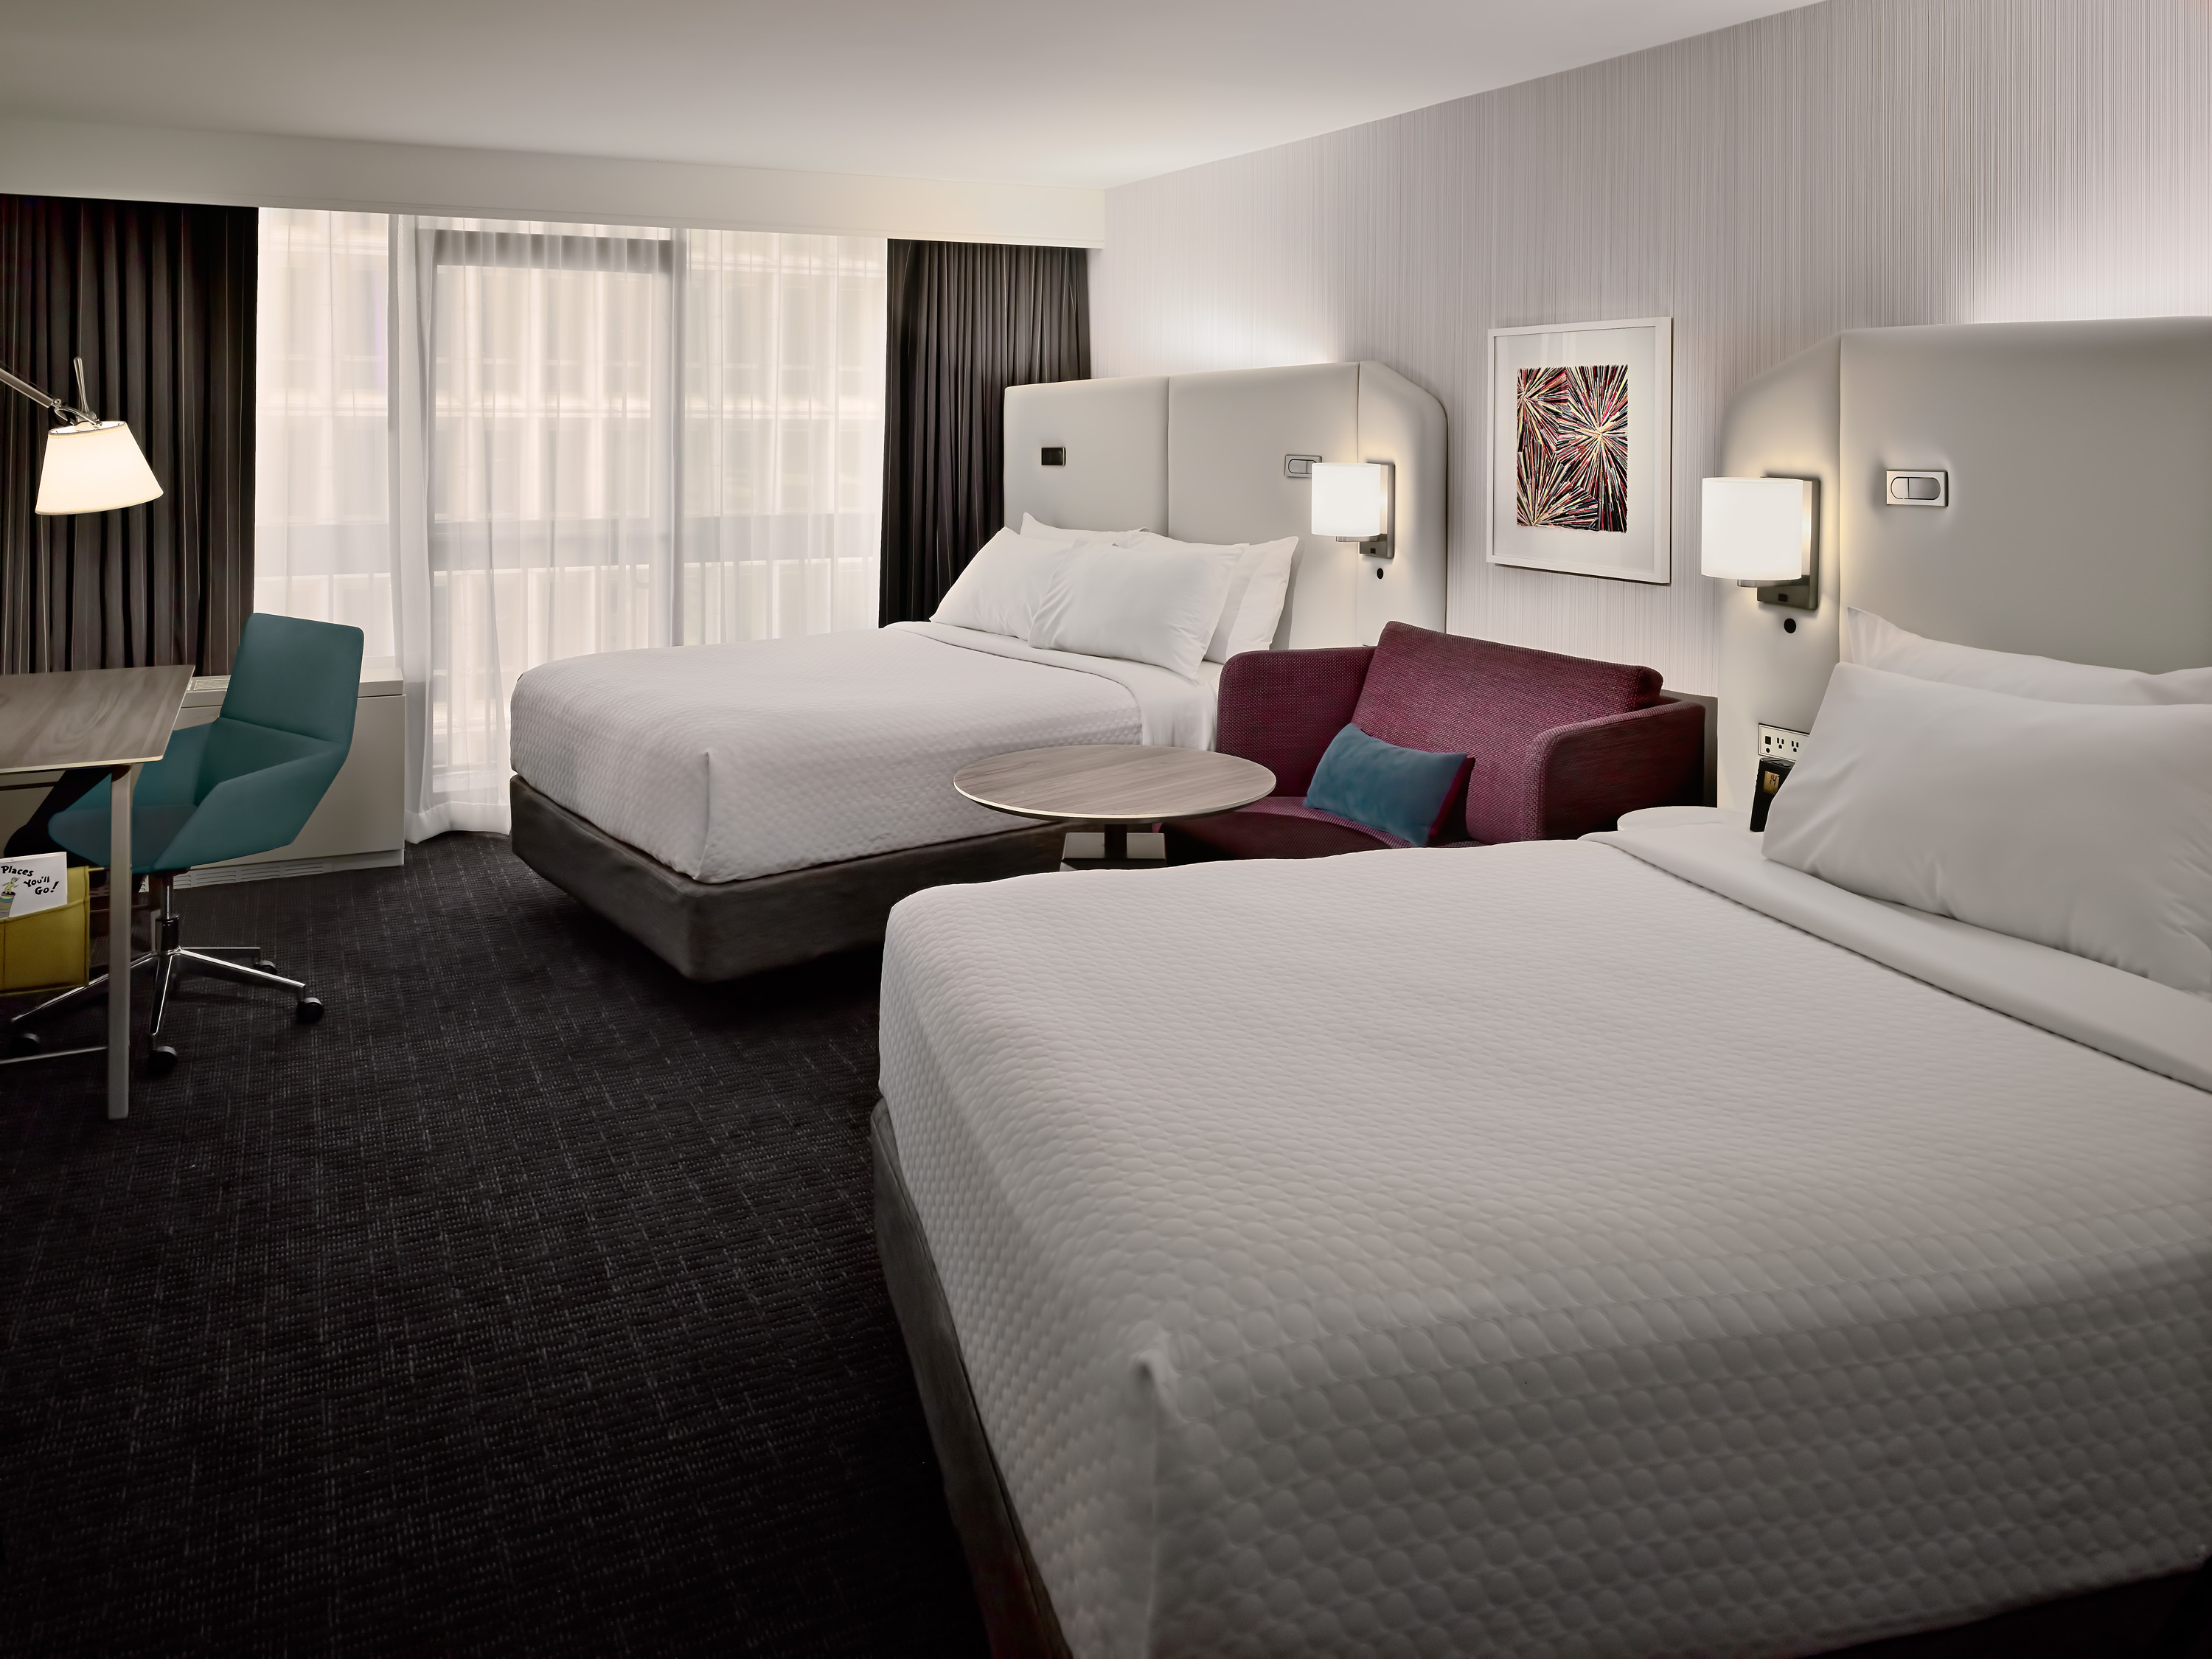 Queen WorkLife guestrooms have two beds angled towards each other with a loveseat in between.